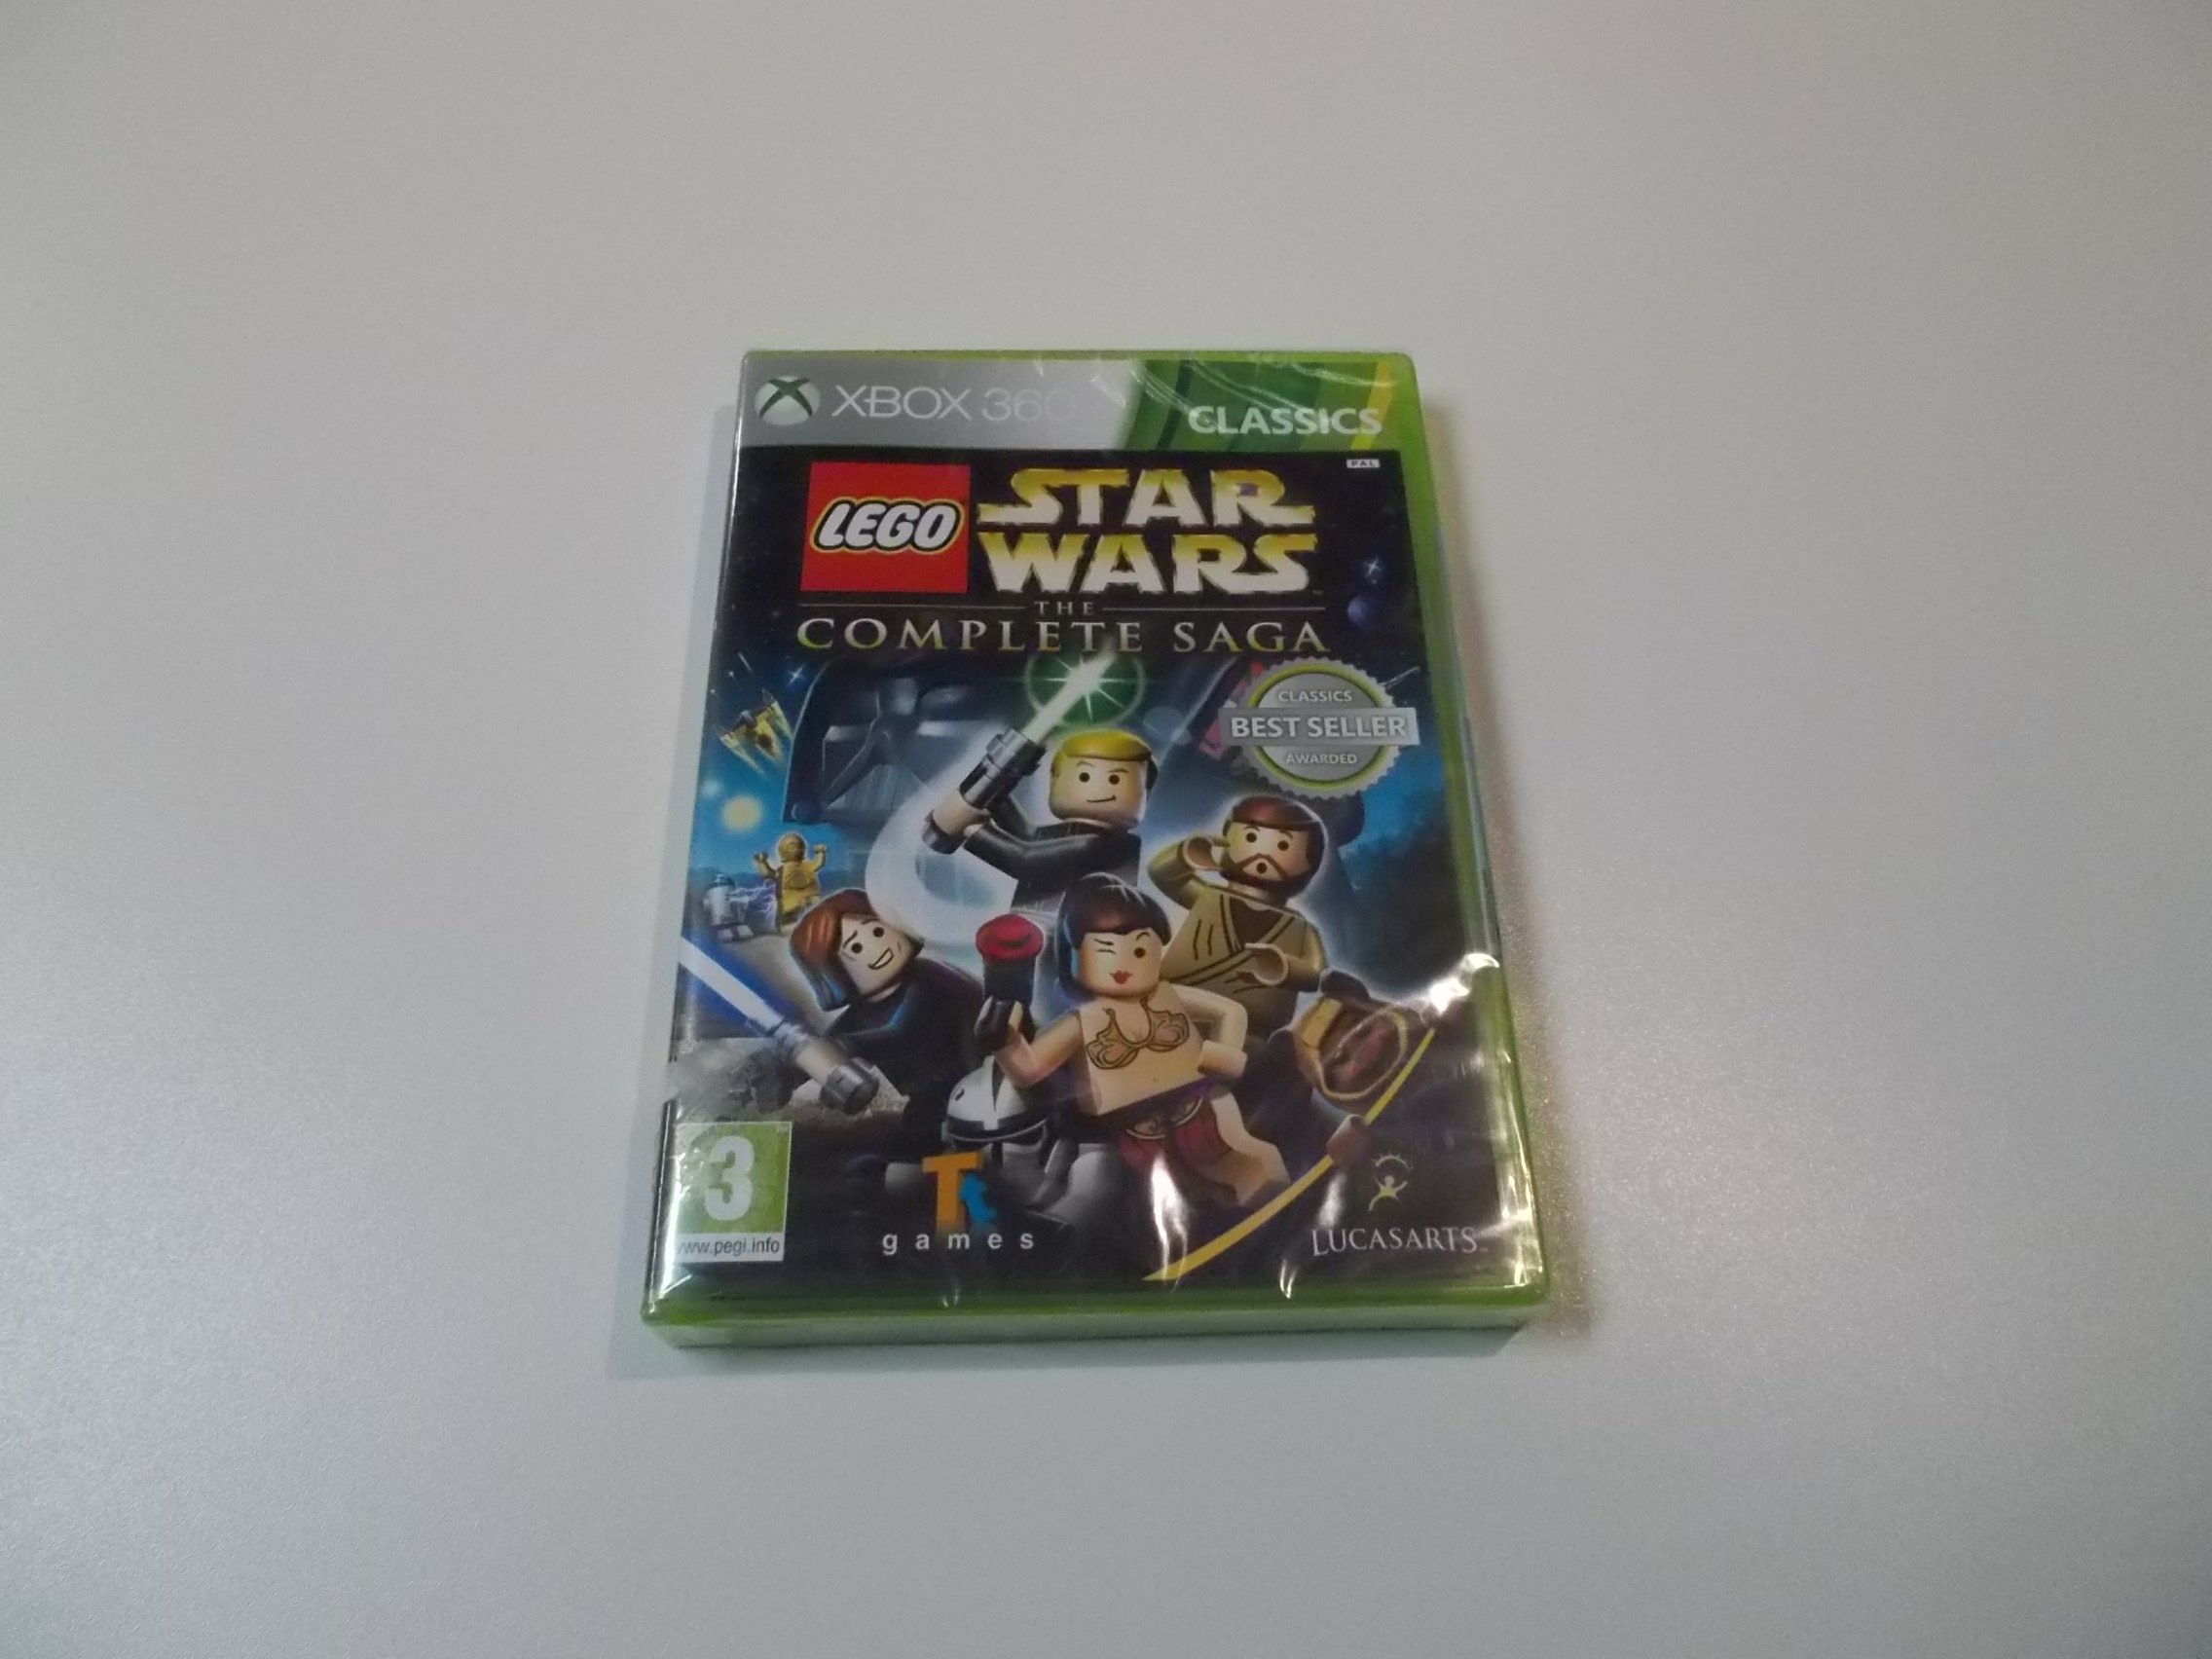 LEGO Star Wars the Complete Saga - GRA Xbox 360 - Sklep